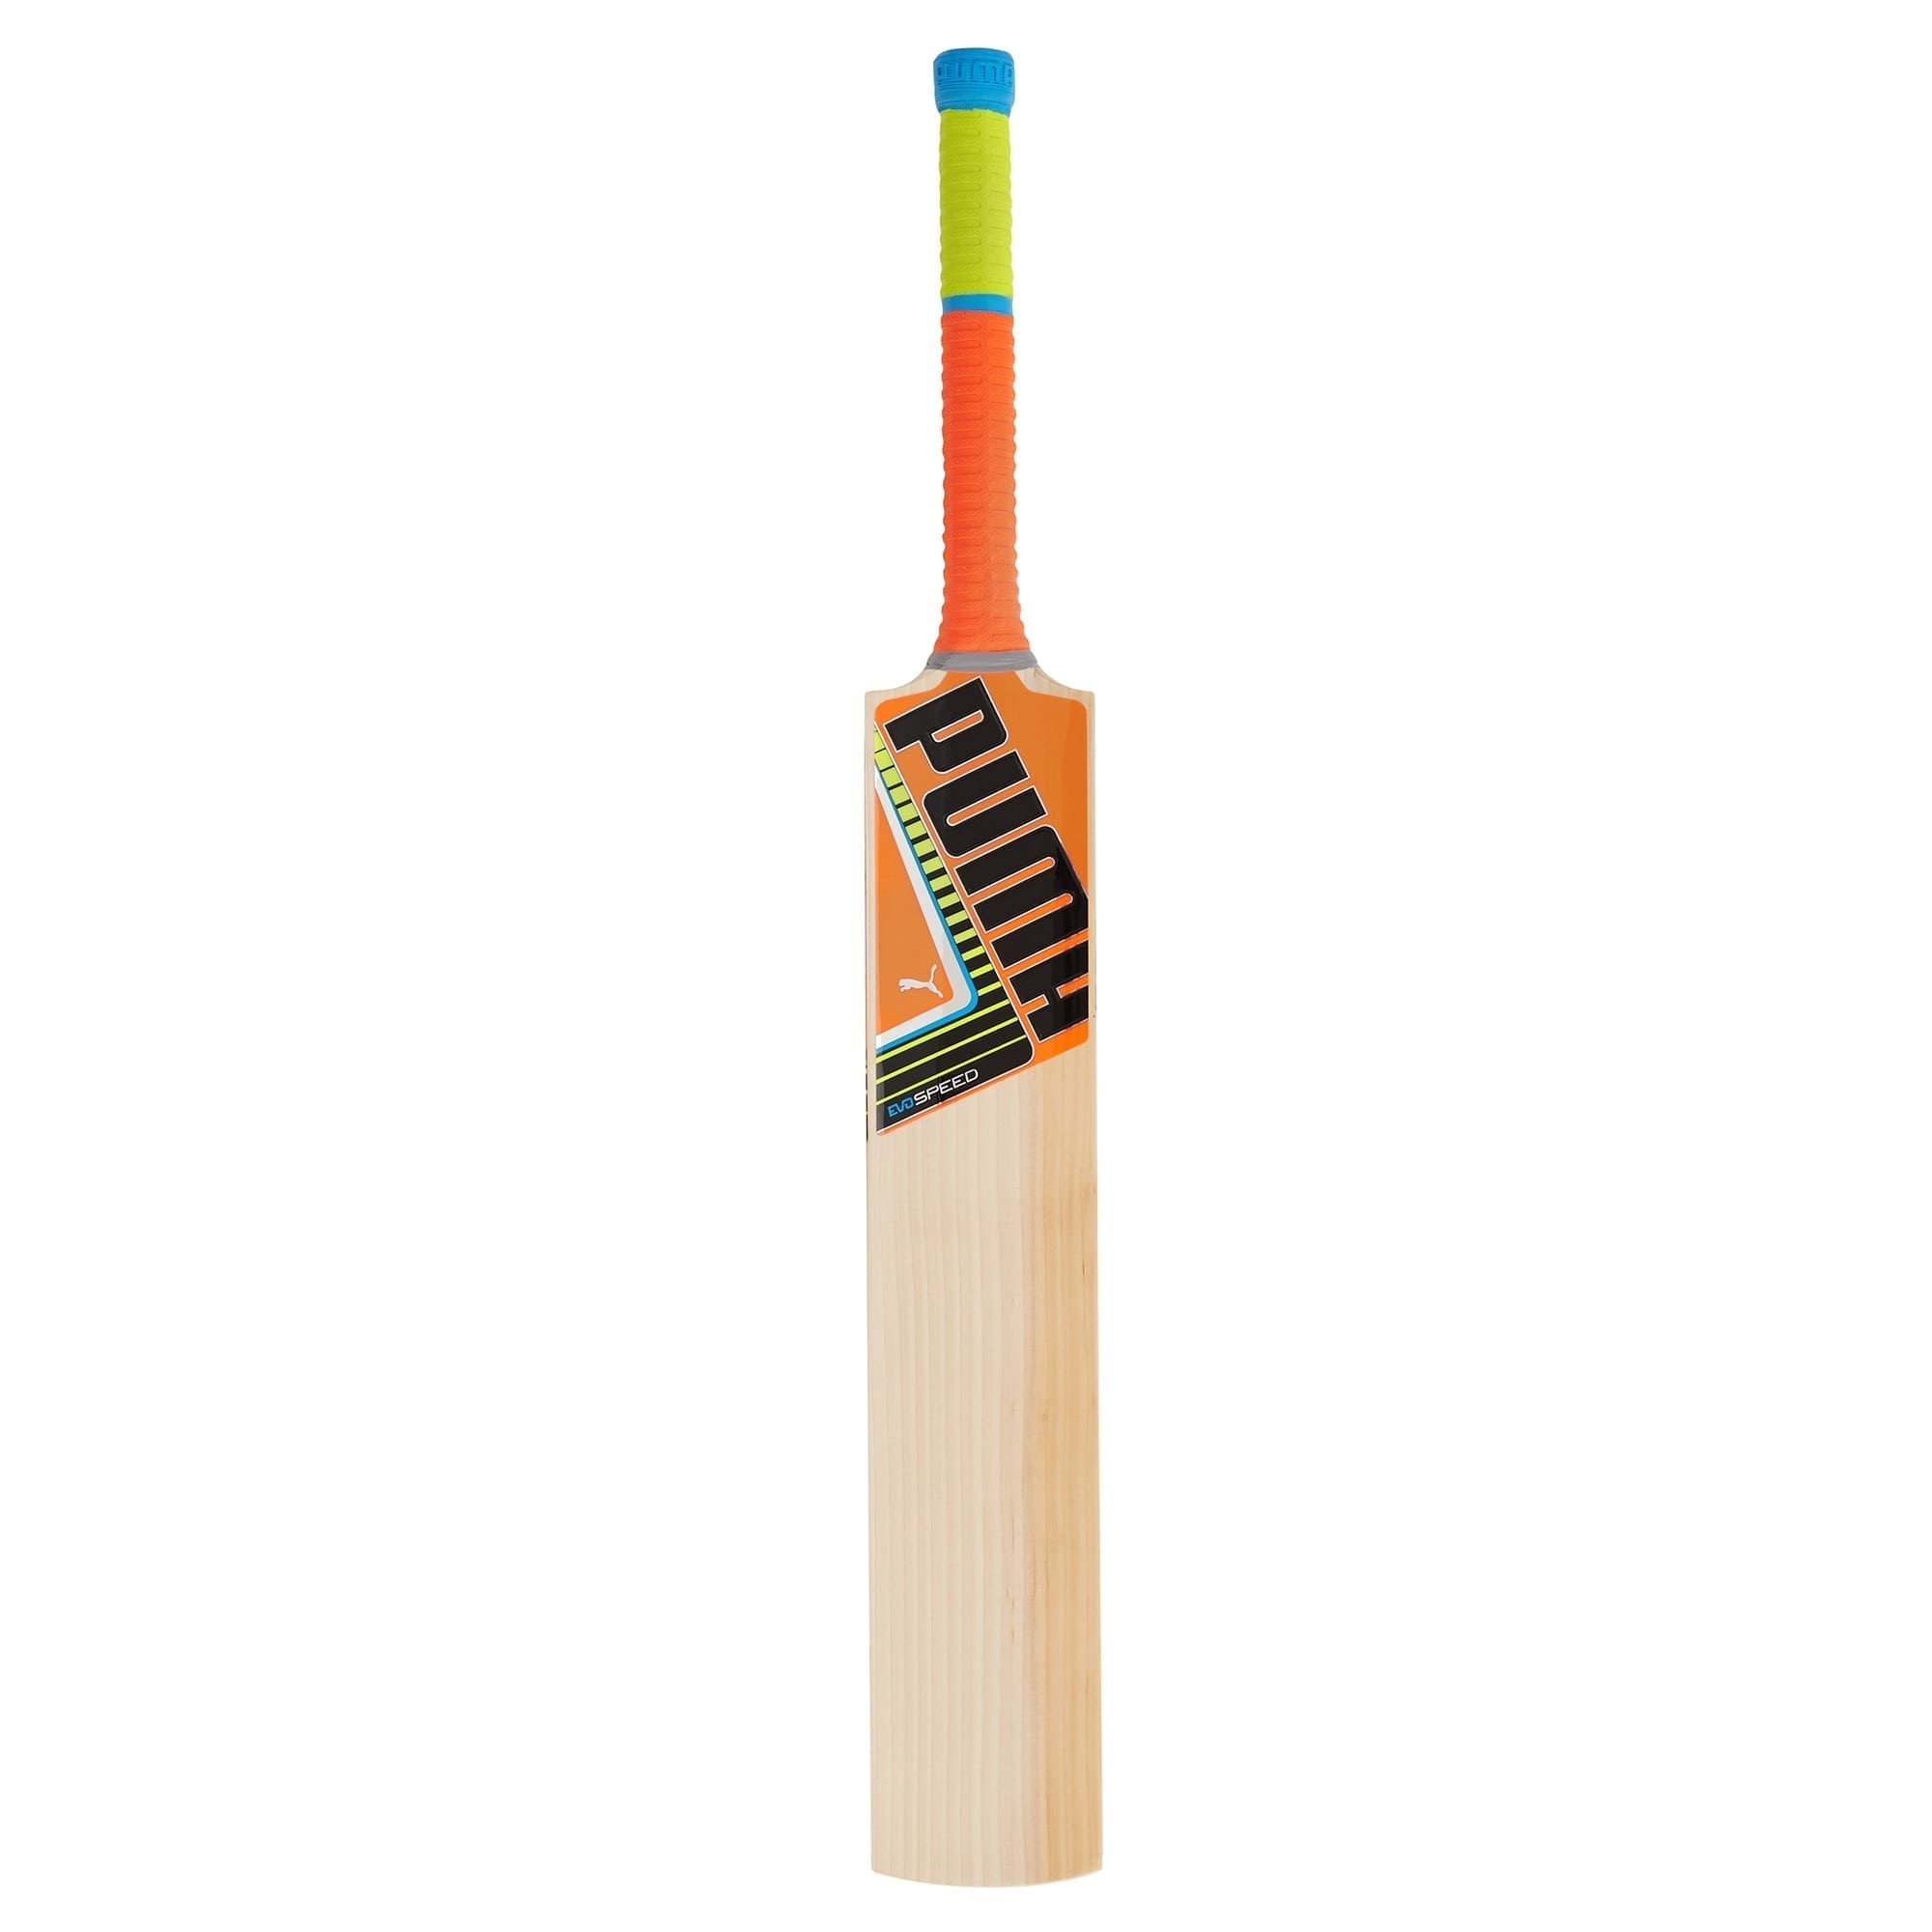 Puma bat evoSPEED 3 - All Cricket Gear